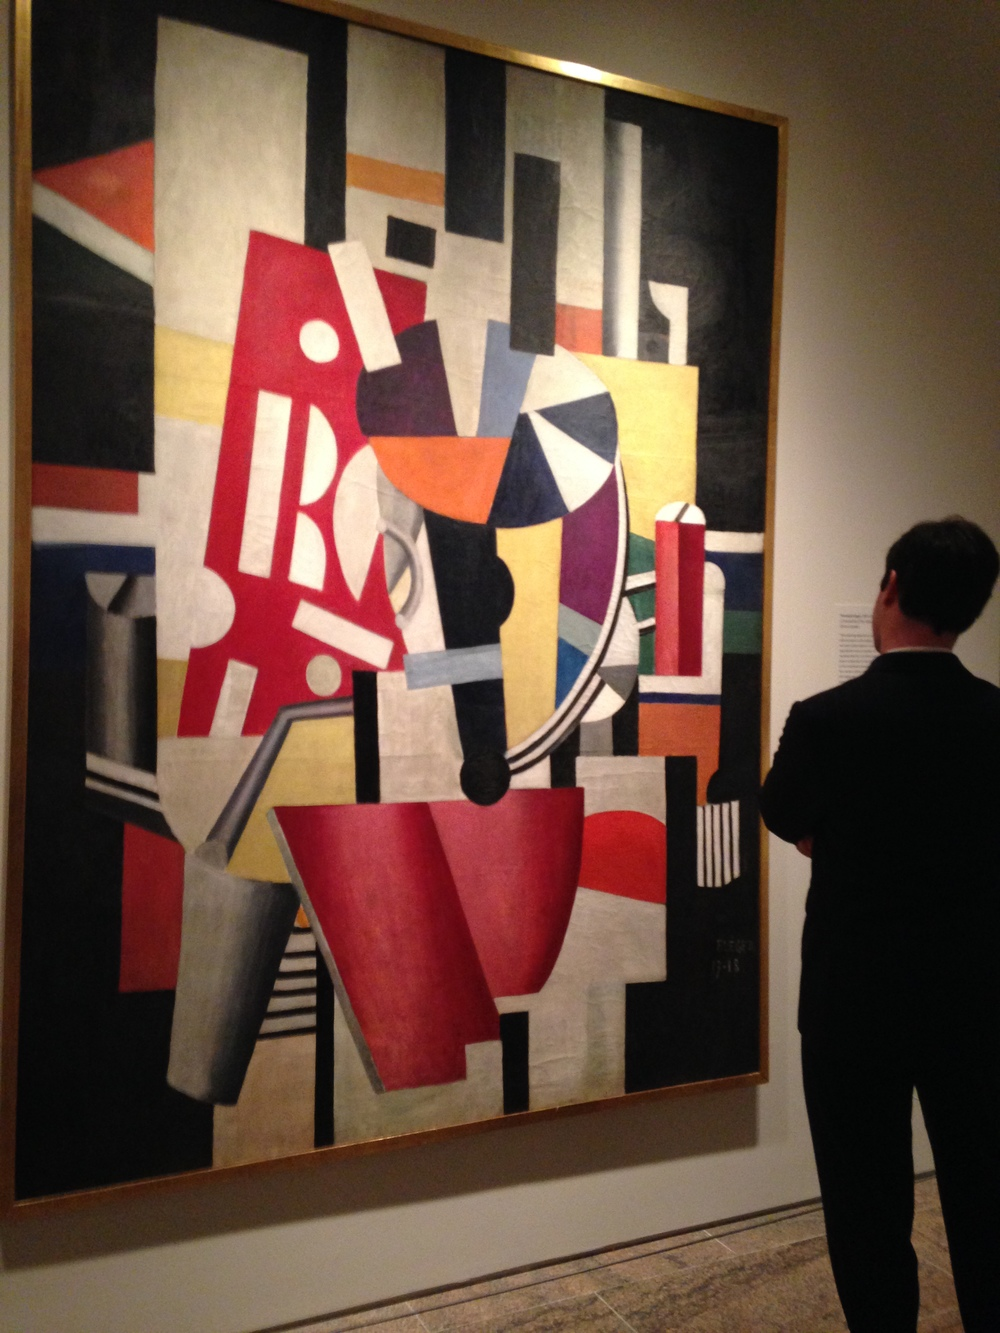 Composition (The Typographer) by Fernand Léger. After weeks of viewing only an image of this painting, it was exciting to see the scale and color in person.